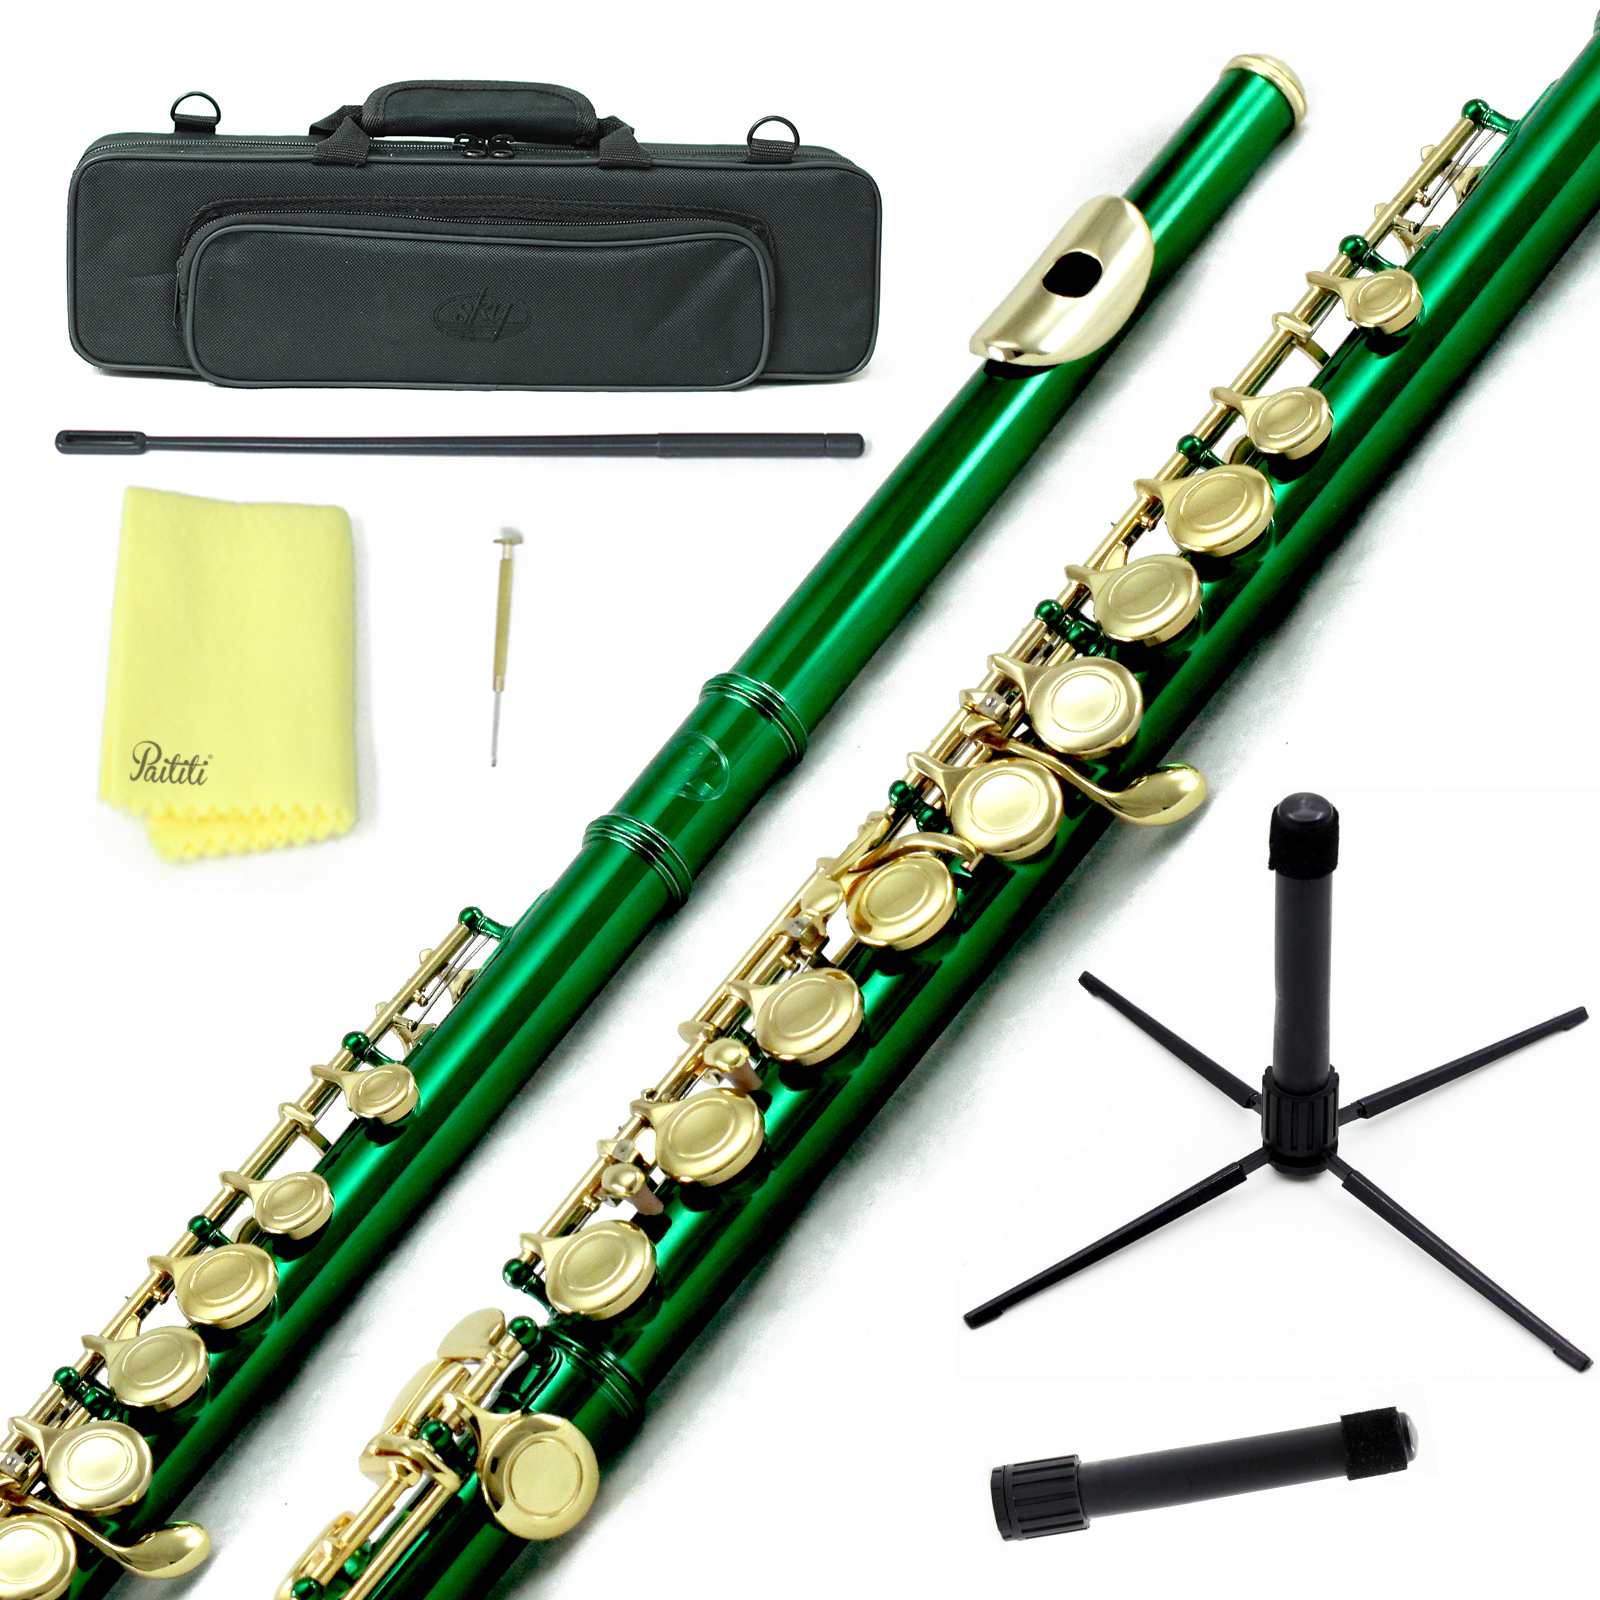 Sky Closed Hole C Flute with Lightweight Case, Cleaning Rod, Cloth, Joint Grease and Screw Driver - Green Gold